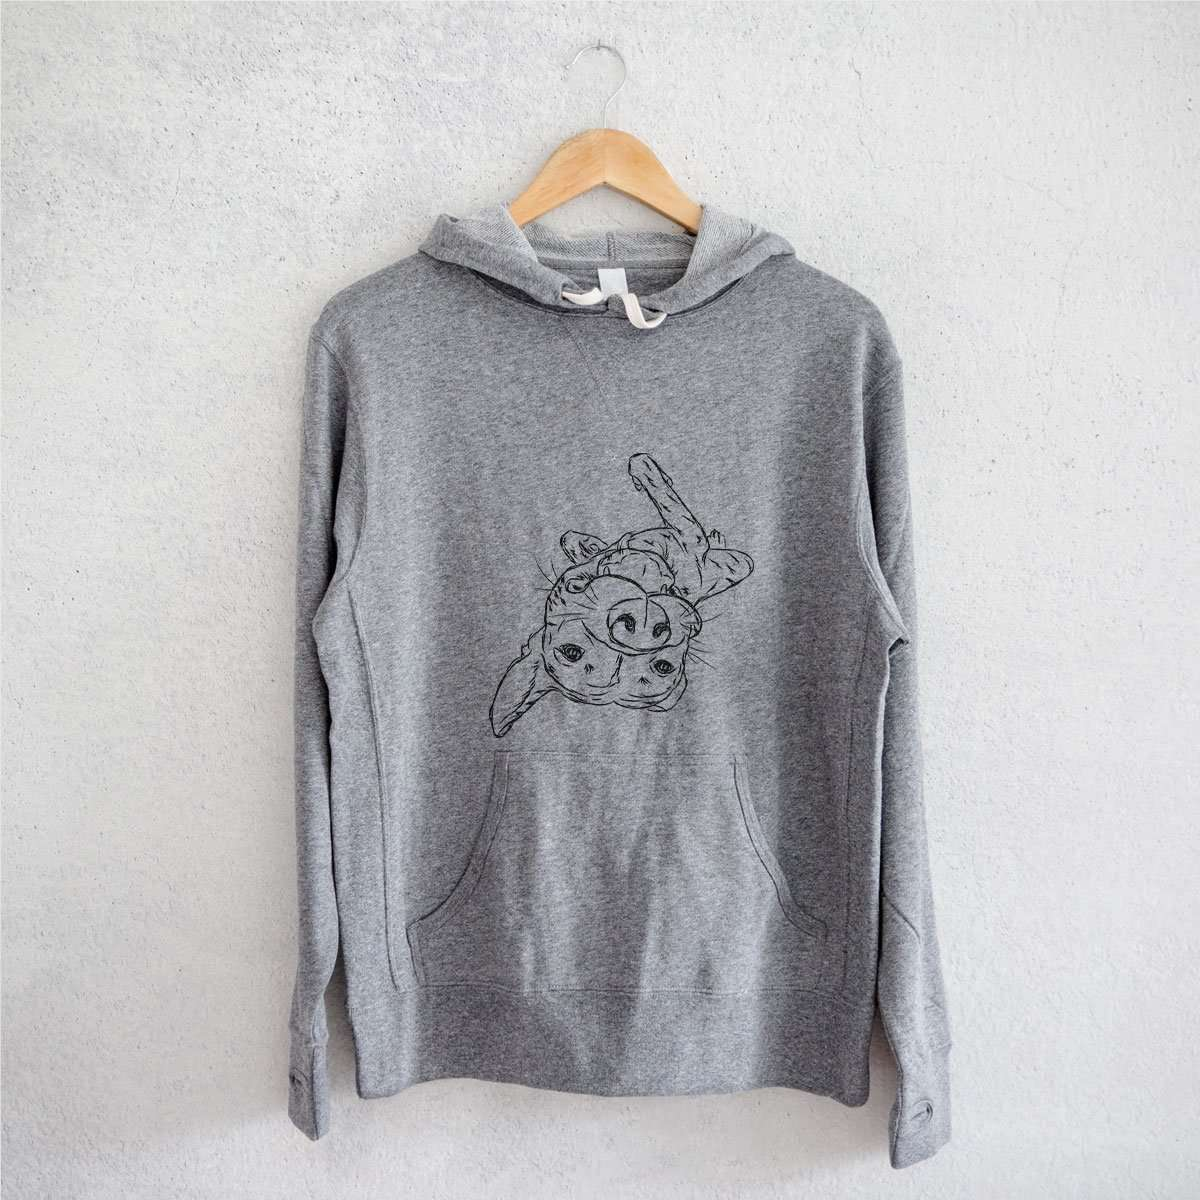 Goose the Mixed Breed - Grey French Terry Hooded Sweatshirt